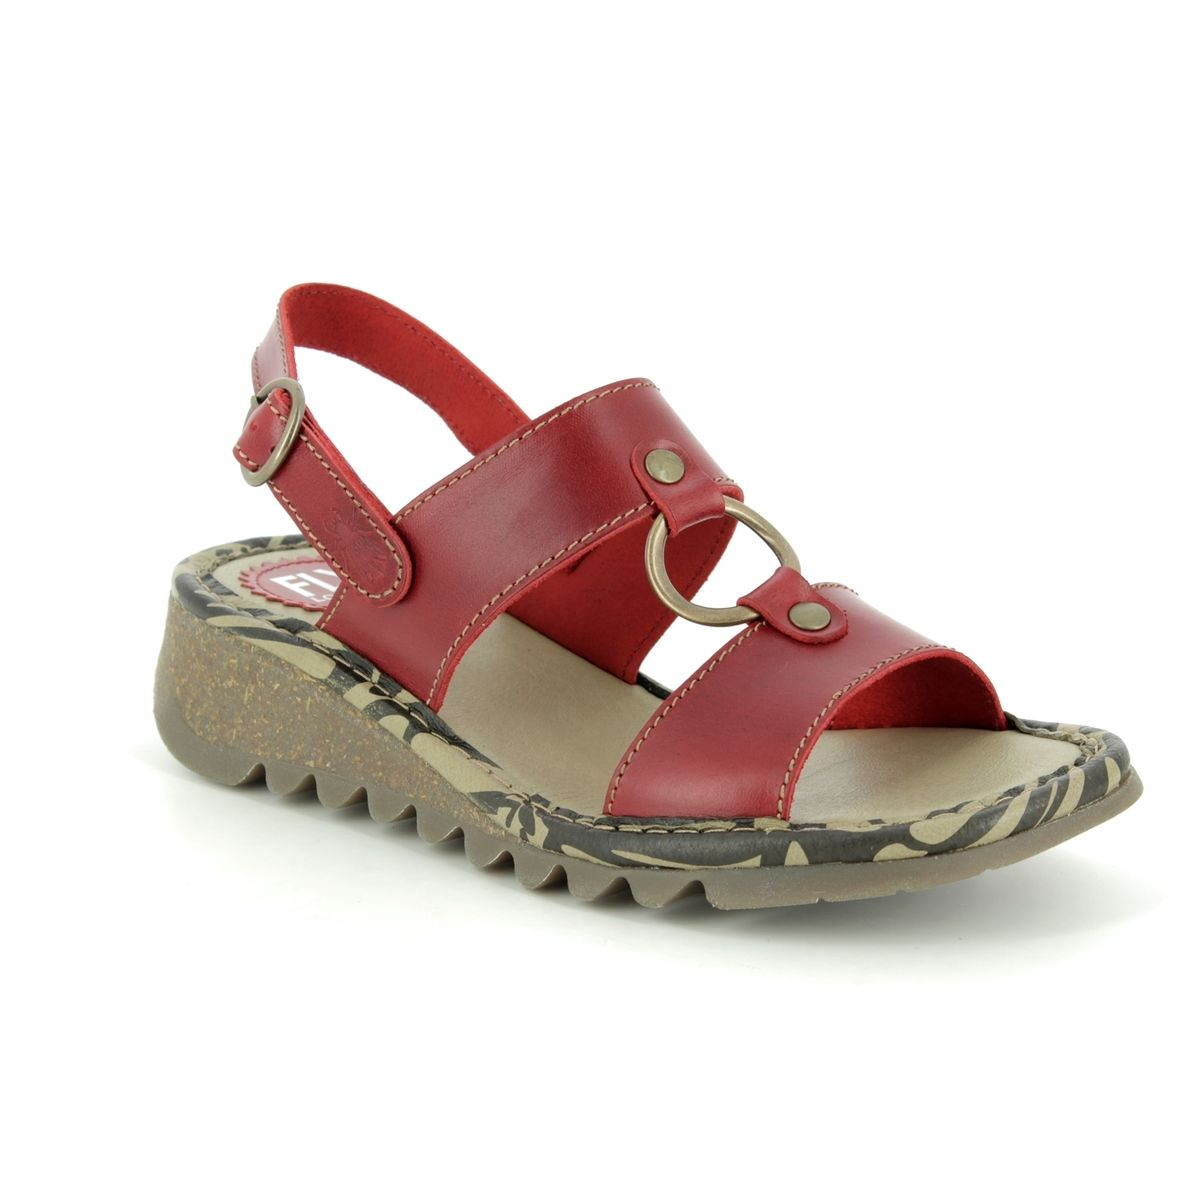 bb96515289f94 Fly London Wedge Sandals - Red leather - P500950 TACO